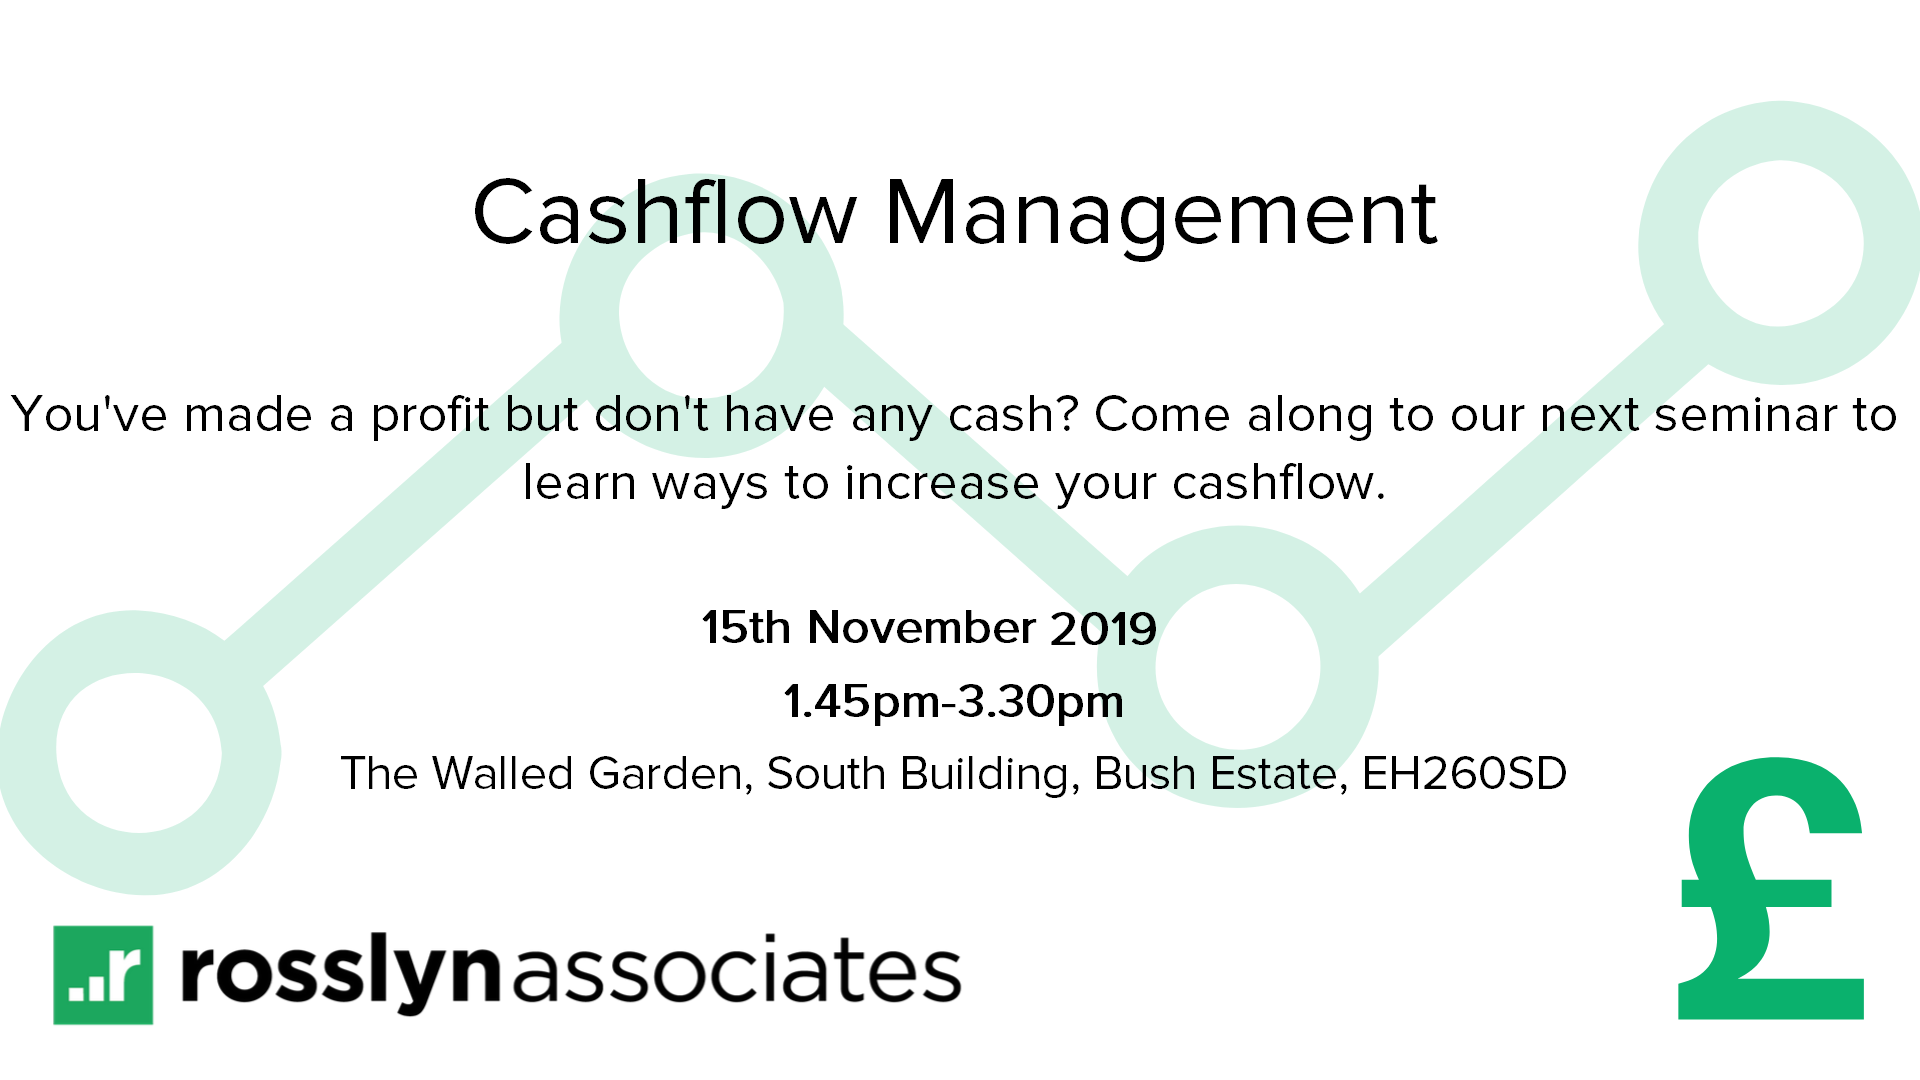 SEMINAR 4: Cashflow Management